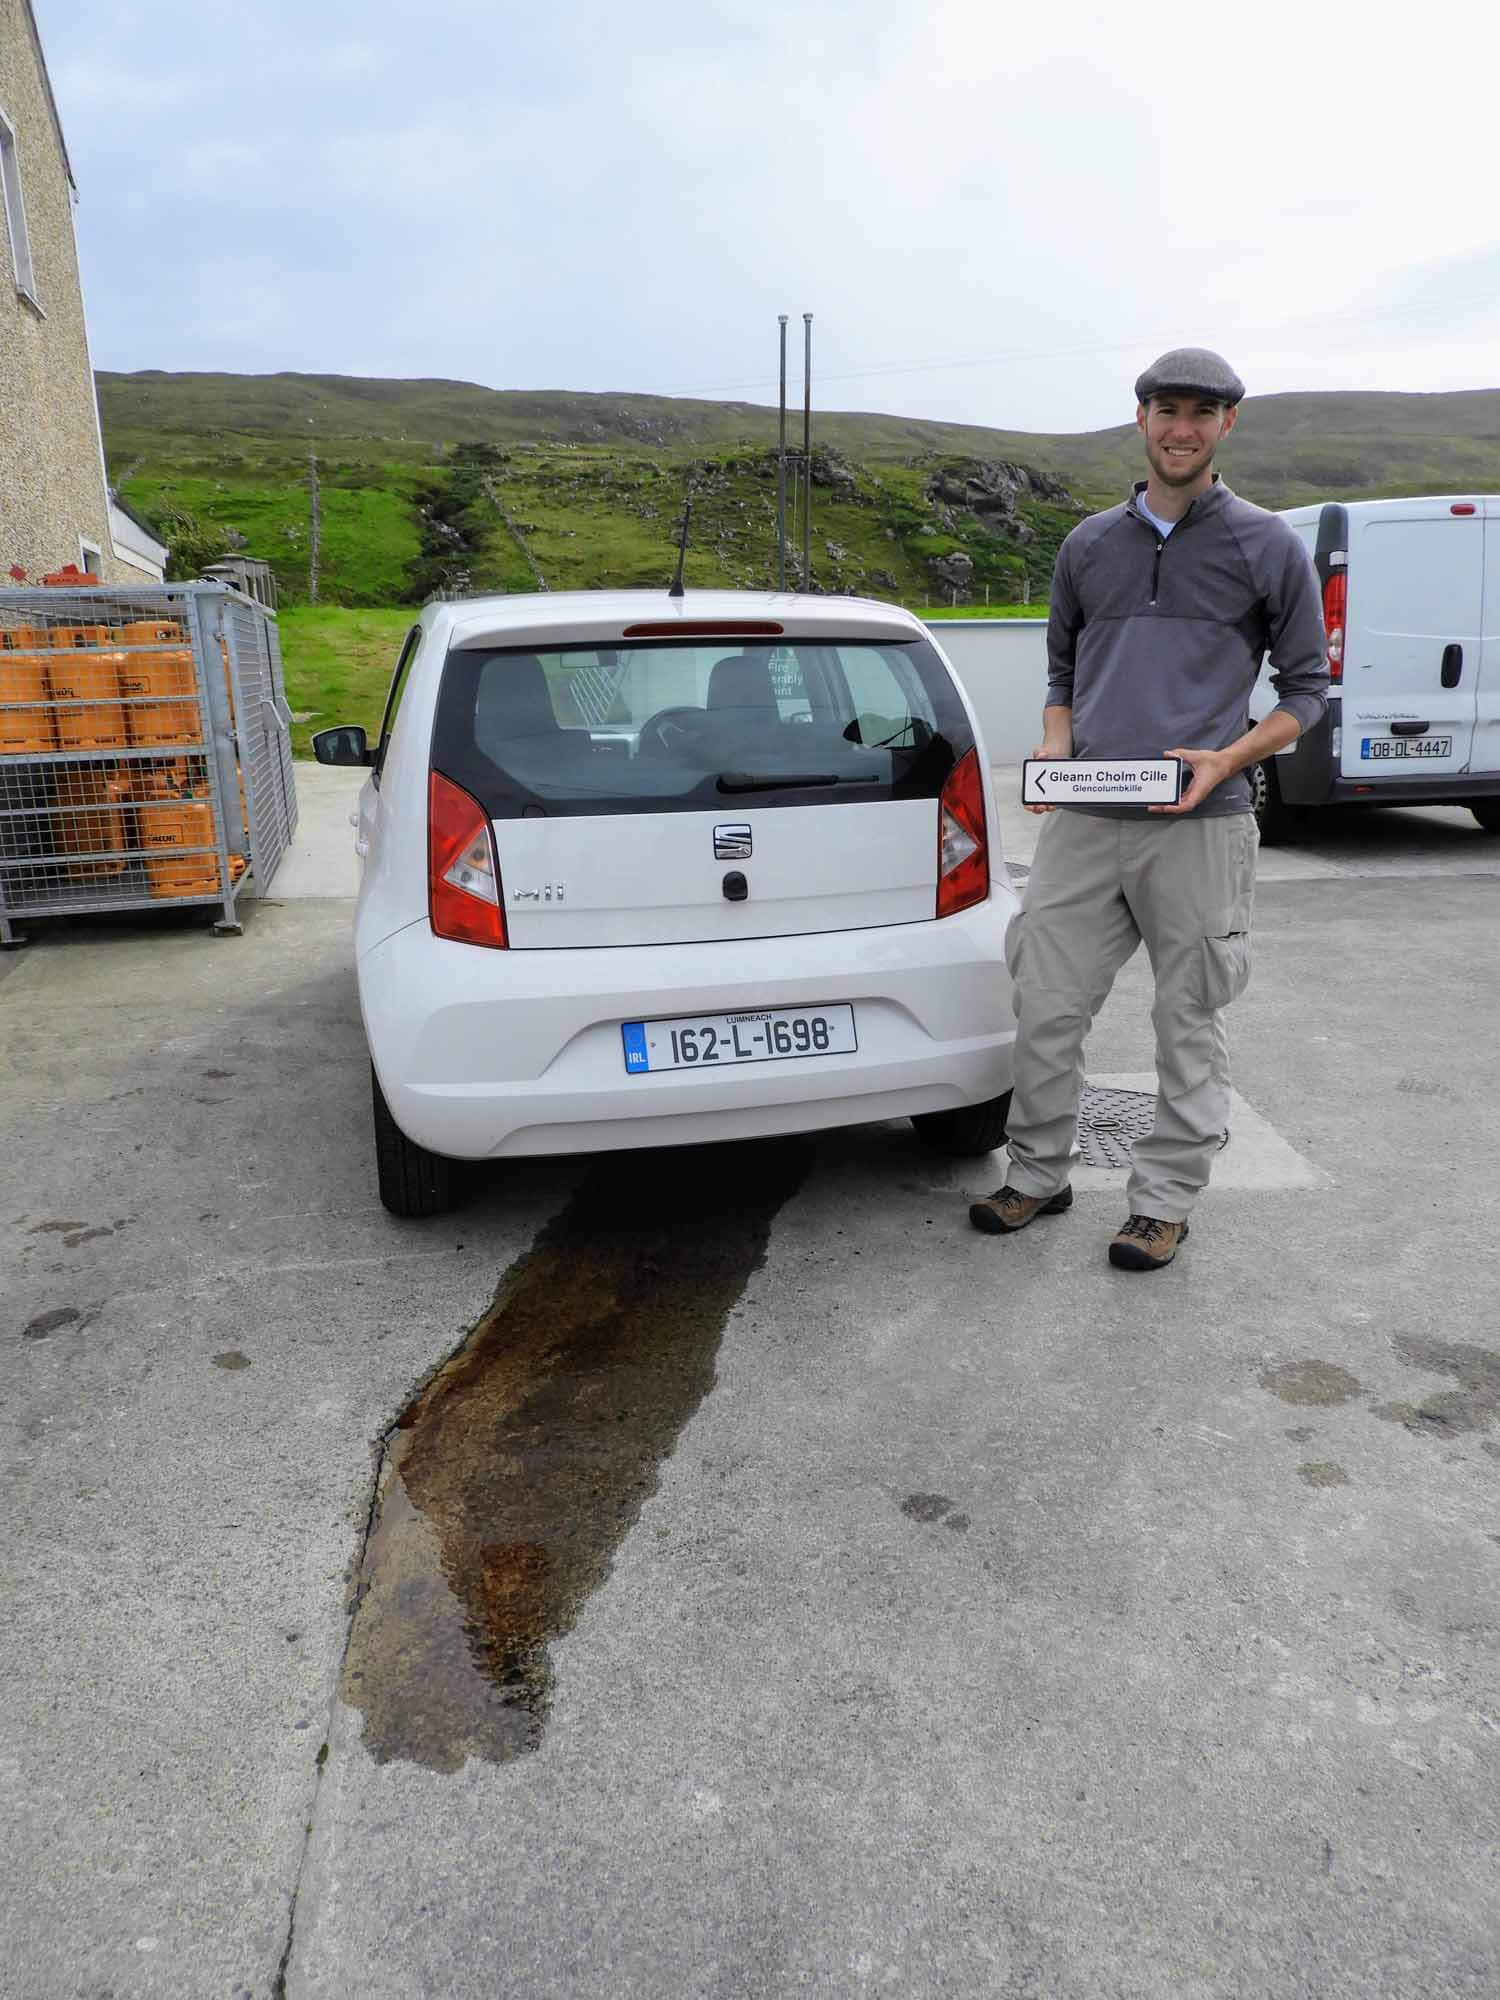 ireland-donegal-glencolumbkille-gleann-cholm-cille-car-broken-oil-leak.jpg